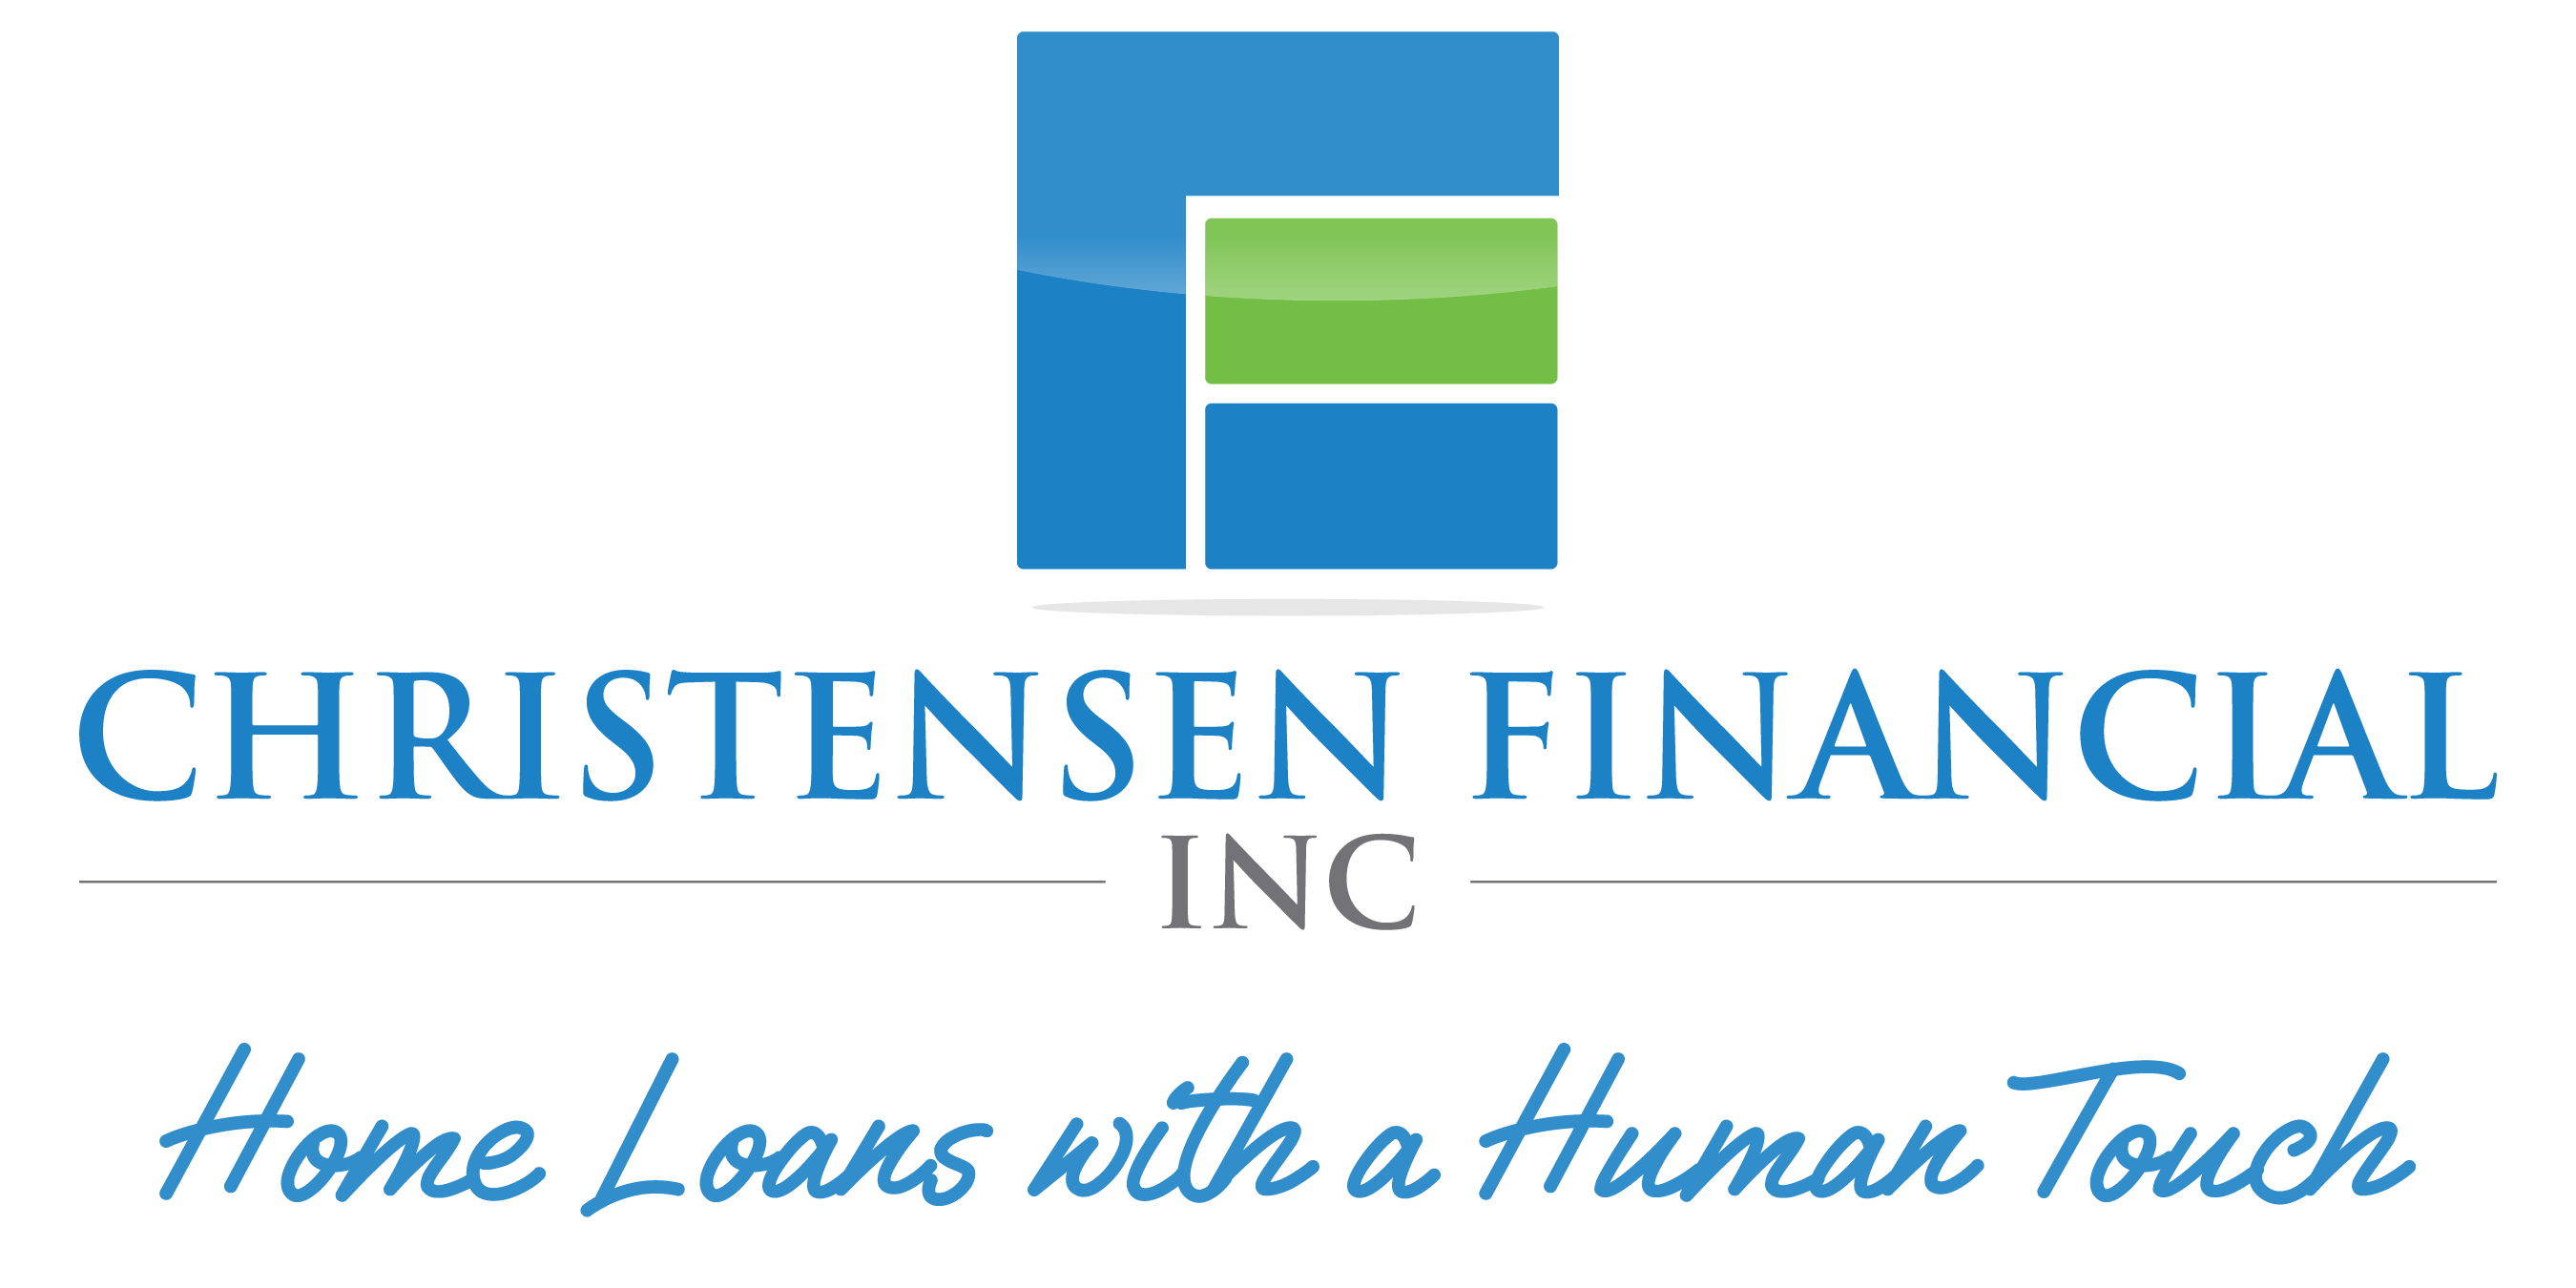 Christensen Financial, Inc. logo